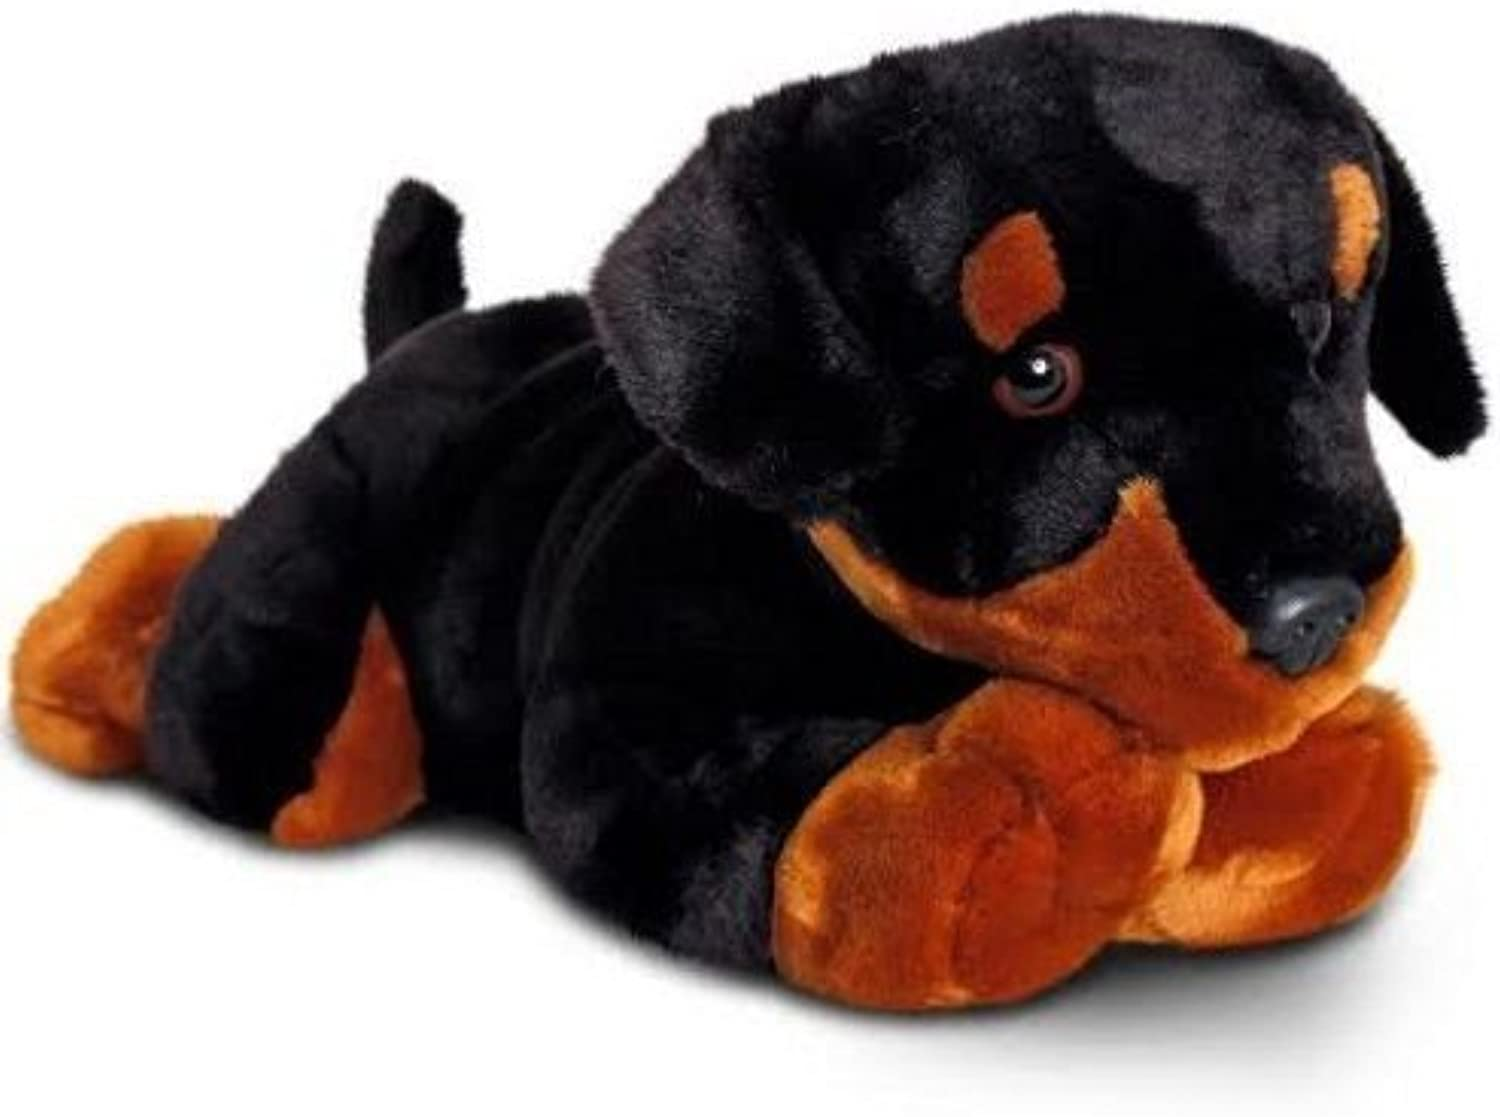 LARGE LAYING BLACK PUPPY by Keel Toys Plush  75cm Limited Run